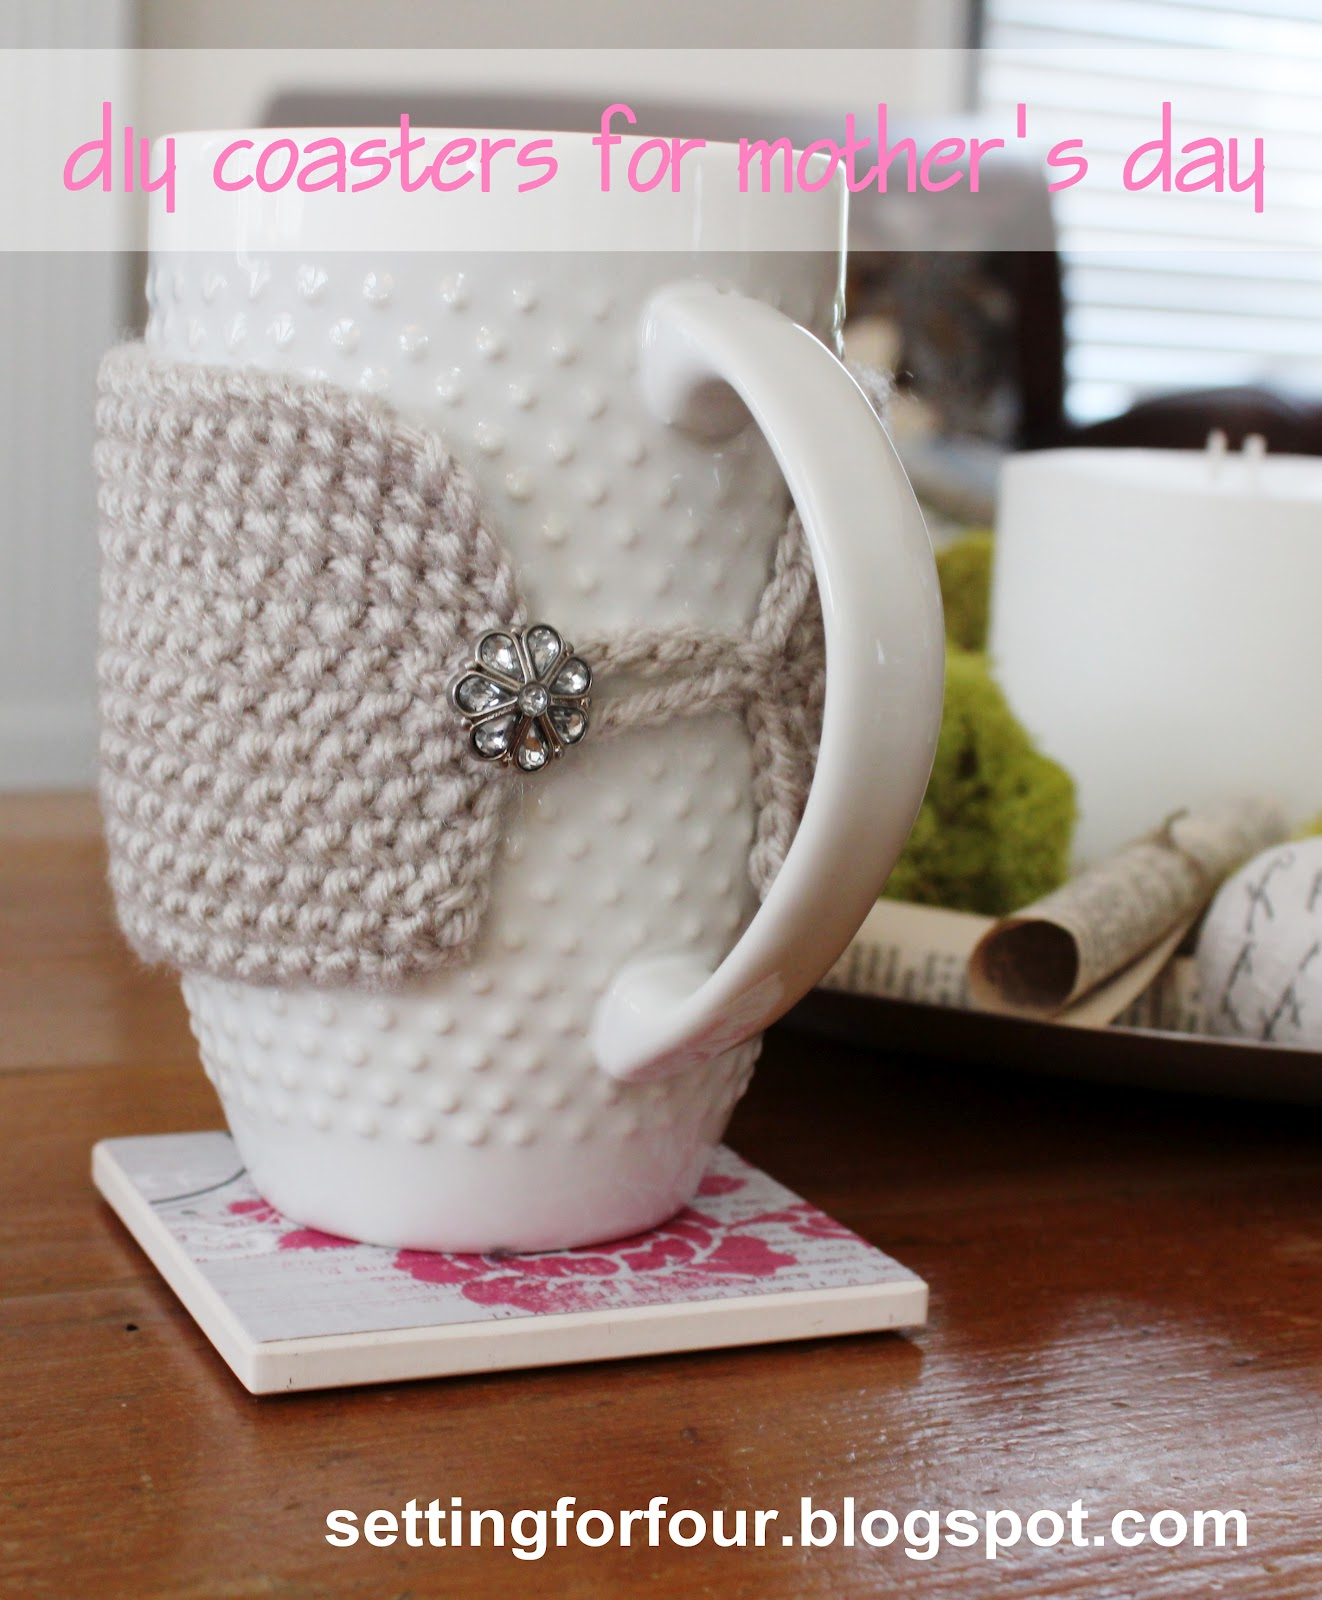 Mod podge diy christmas gift ideas